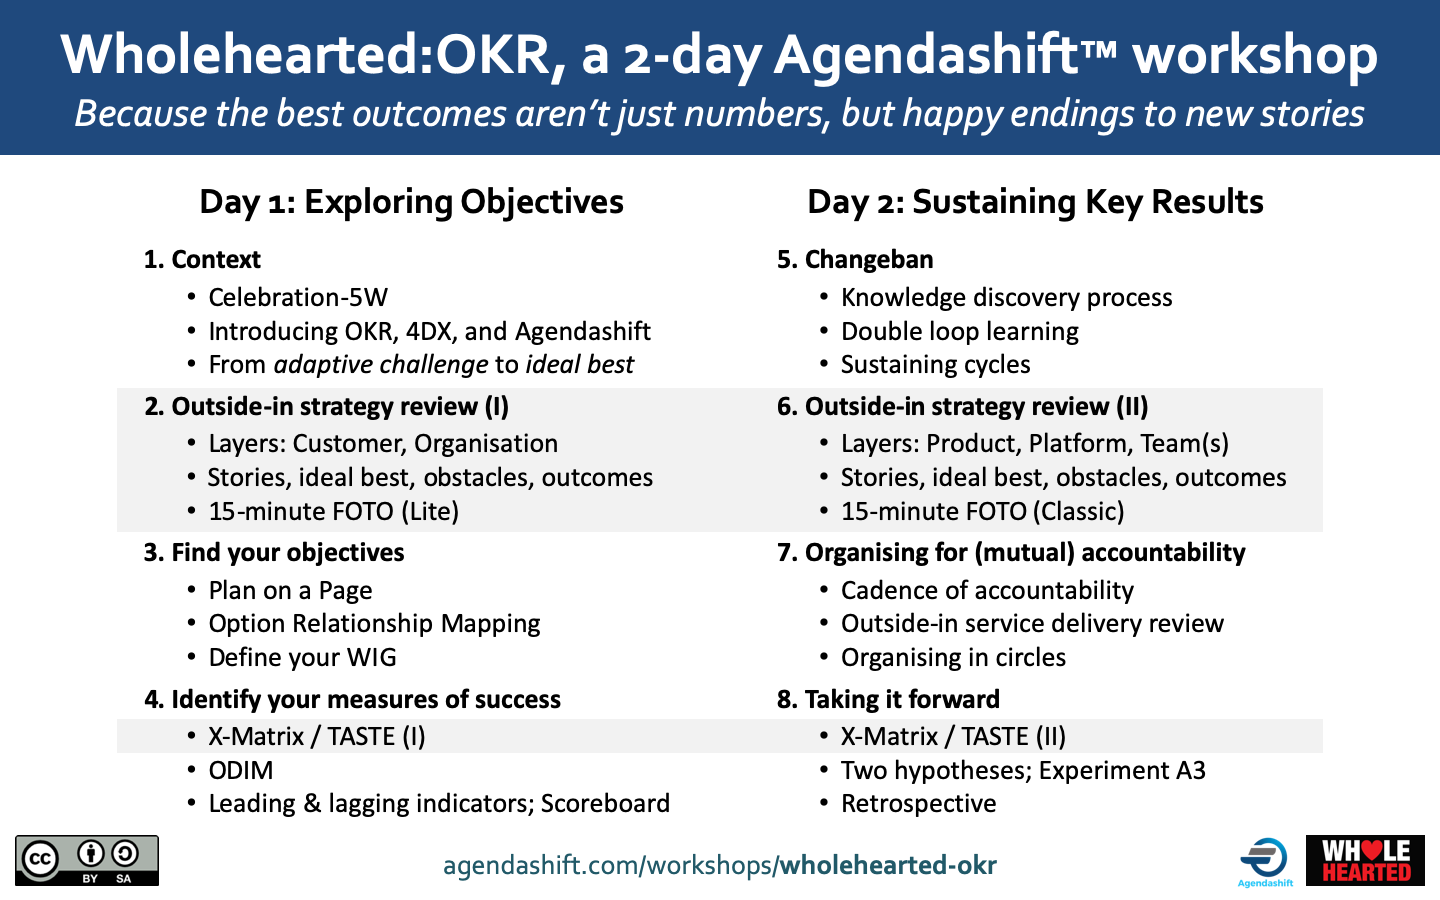 wholehearted-okr-overview-2019-12-07